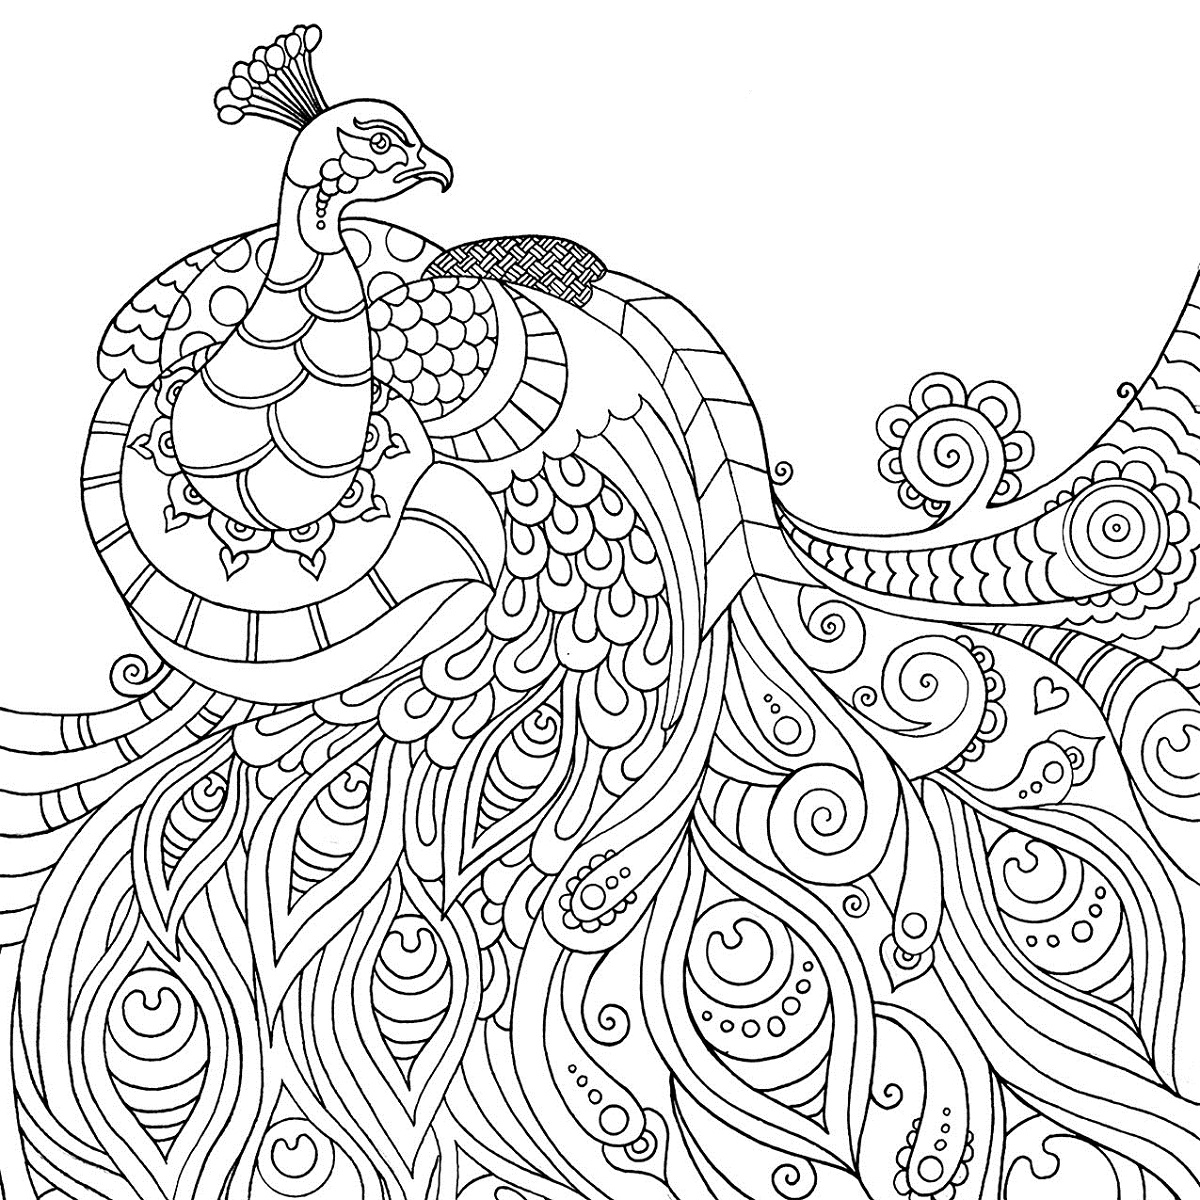 Free Mindfulness Coloring Pages At Getdrawings